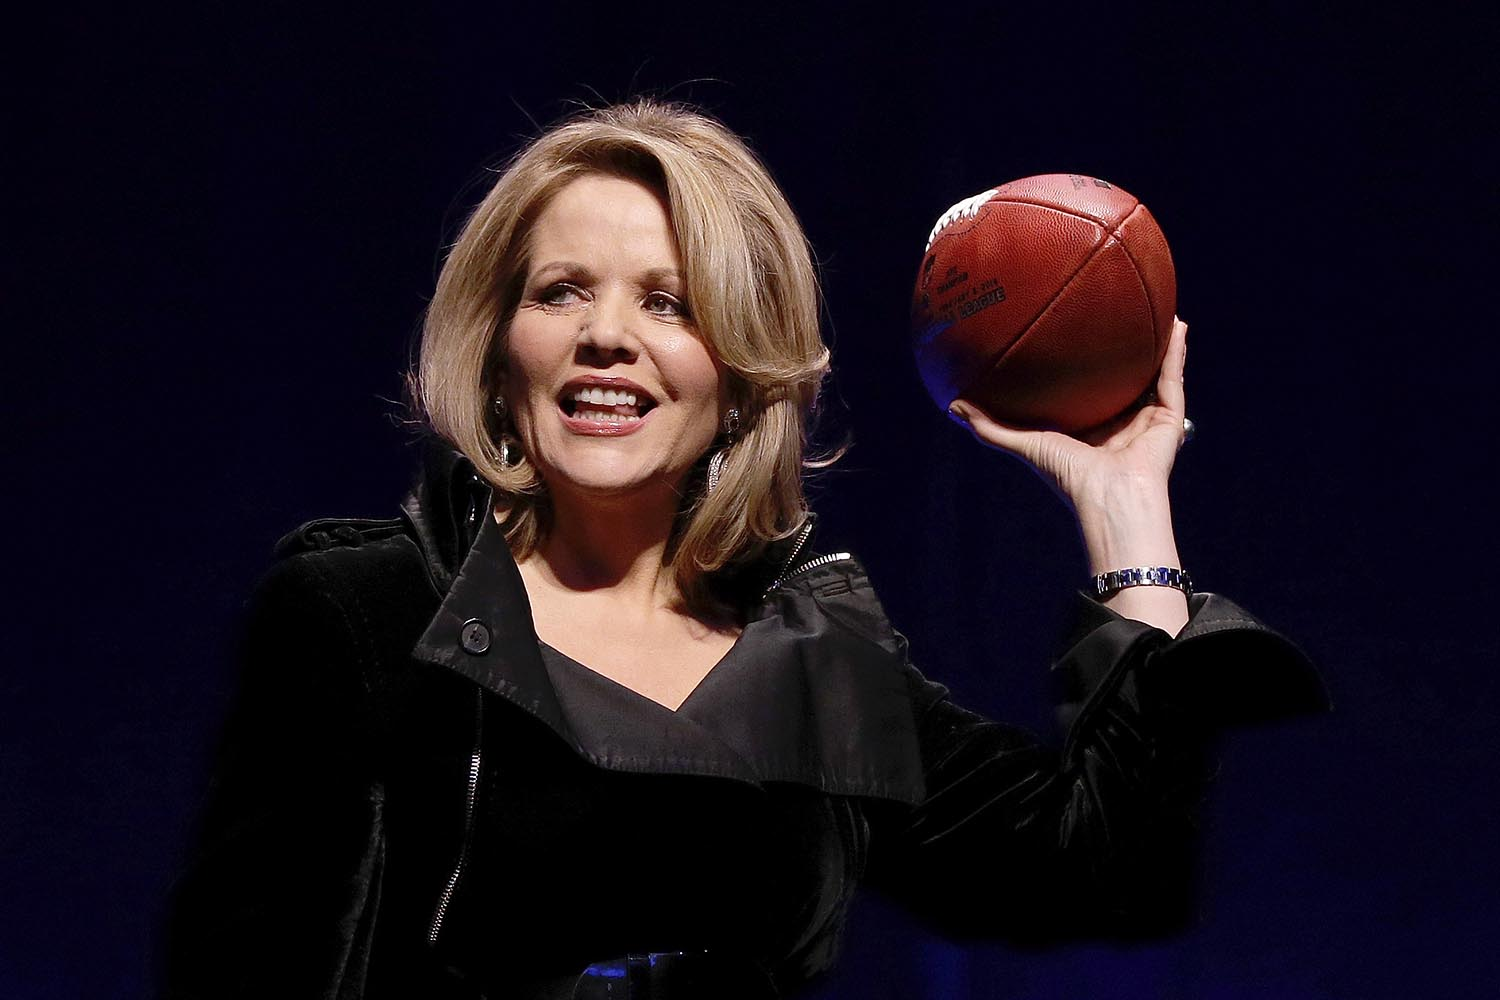 <div class='meta'><div class='origin-logo' data-origin='AP'></div><span class='caption-text' data-credit='AP Photo'>2014: Opera singer Renee Fleming who will sing the National Anthem before the NFL Super Bowl XLVIII football game holds the game ball during a press conference in New York.</span></div>